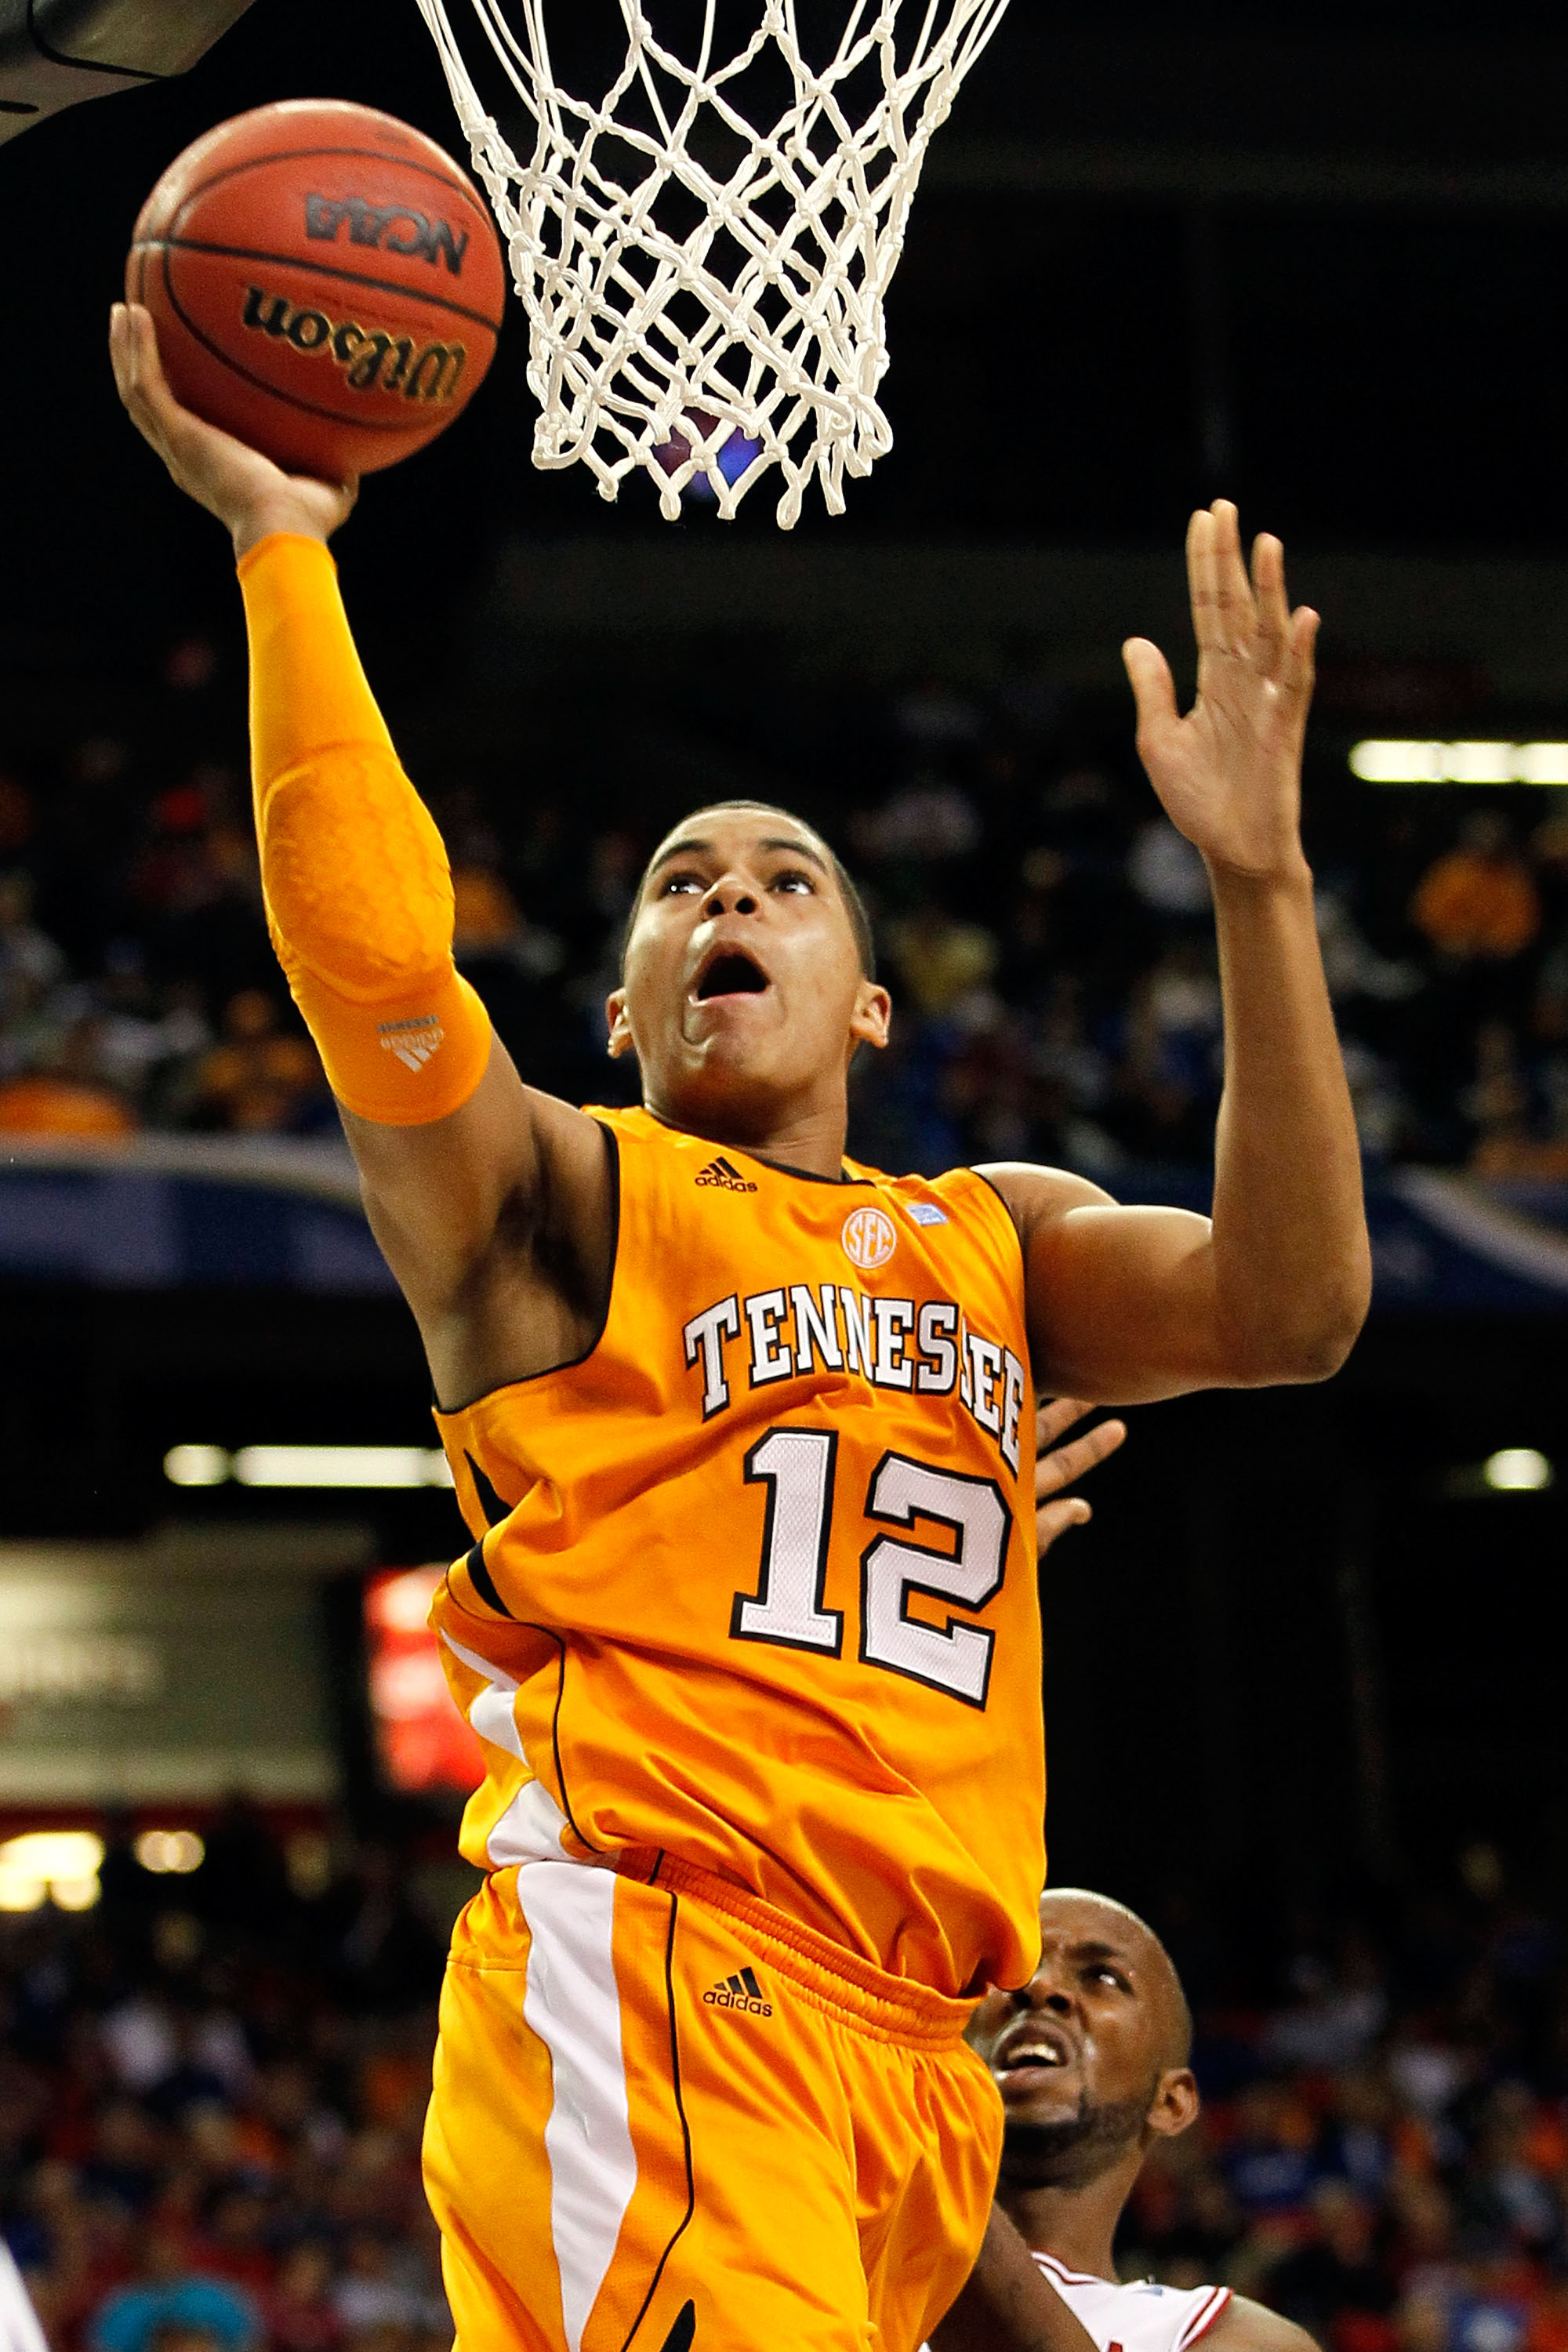 ATLANTA, GA - MARCH 10:  Tobias Harris #12 of the Tennessee Volunteers shoots against the Arkansas Razorbacks during the first round of the SEC Men's Basketball Tournament at the Georgia Dome on March 10, 2011 in Atlanta, Georgia.  (Photo by Kevin C. Cox/